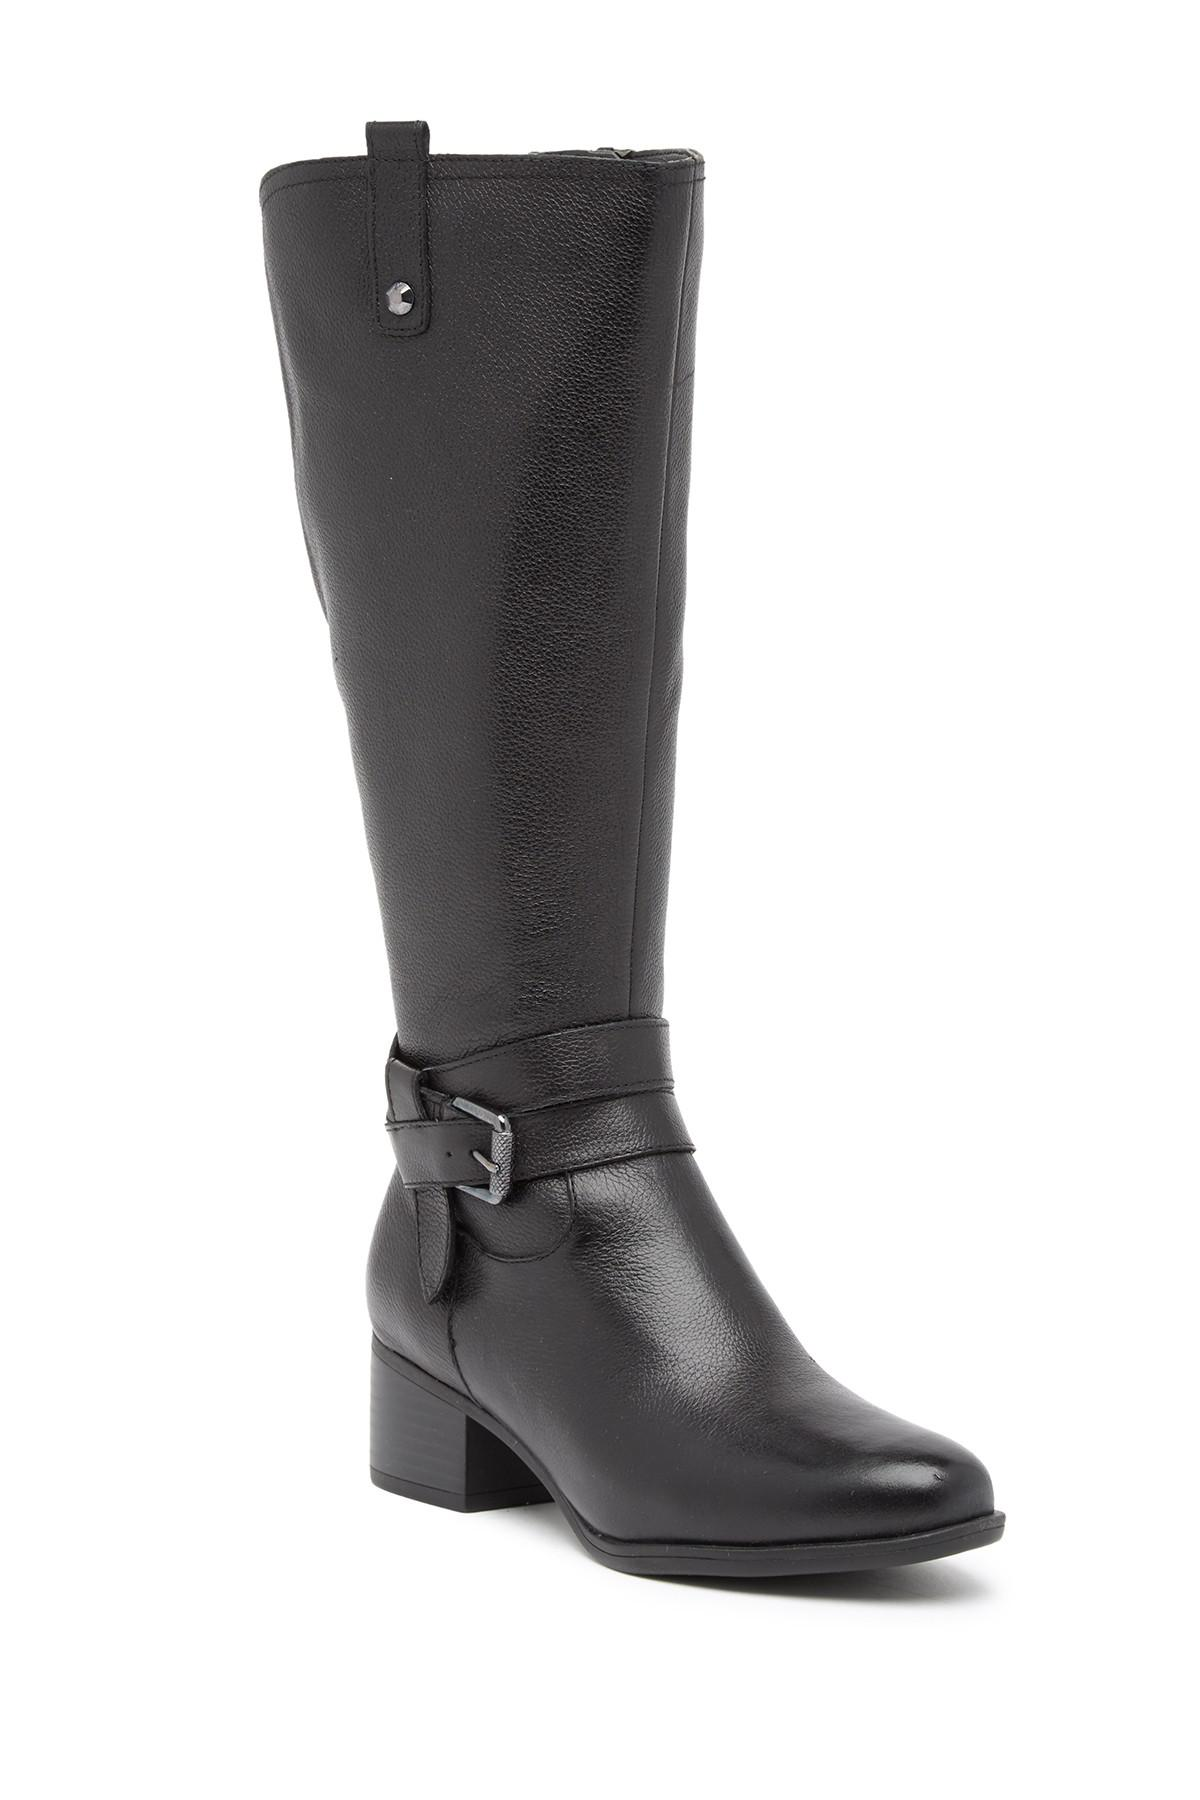 1bc06e4cda6a Naturalizer. Women s Black Kim Ankle Strap Leather Boot - Wide Width  Available